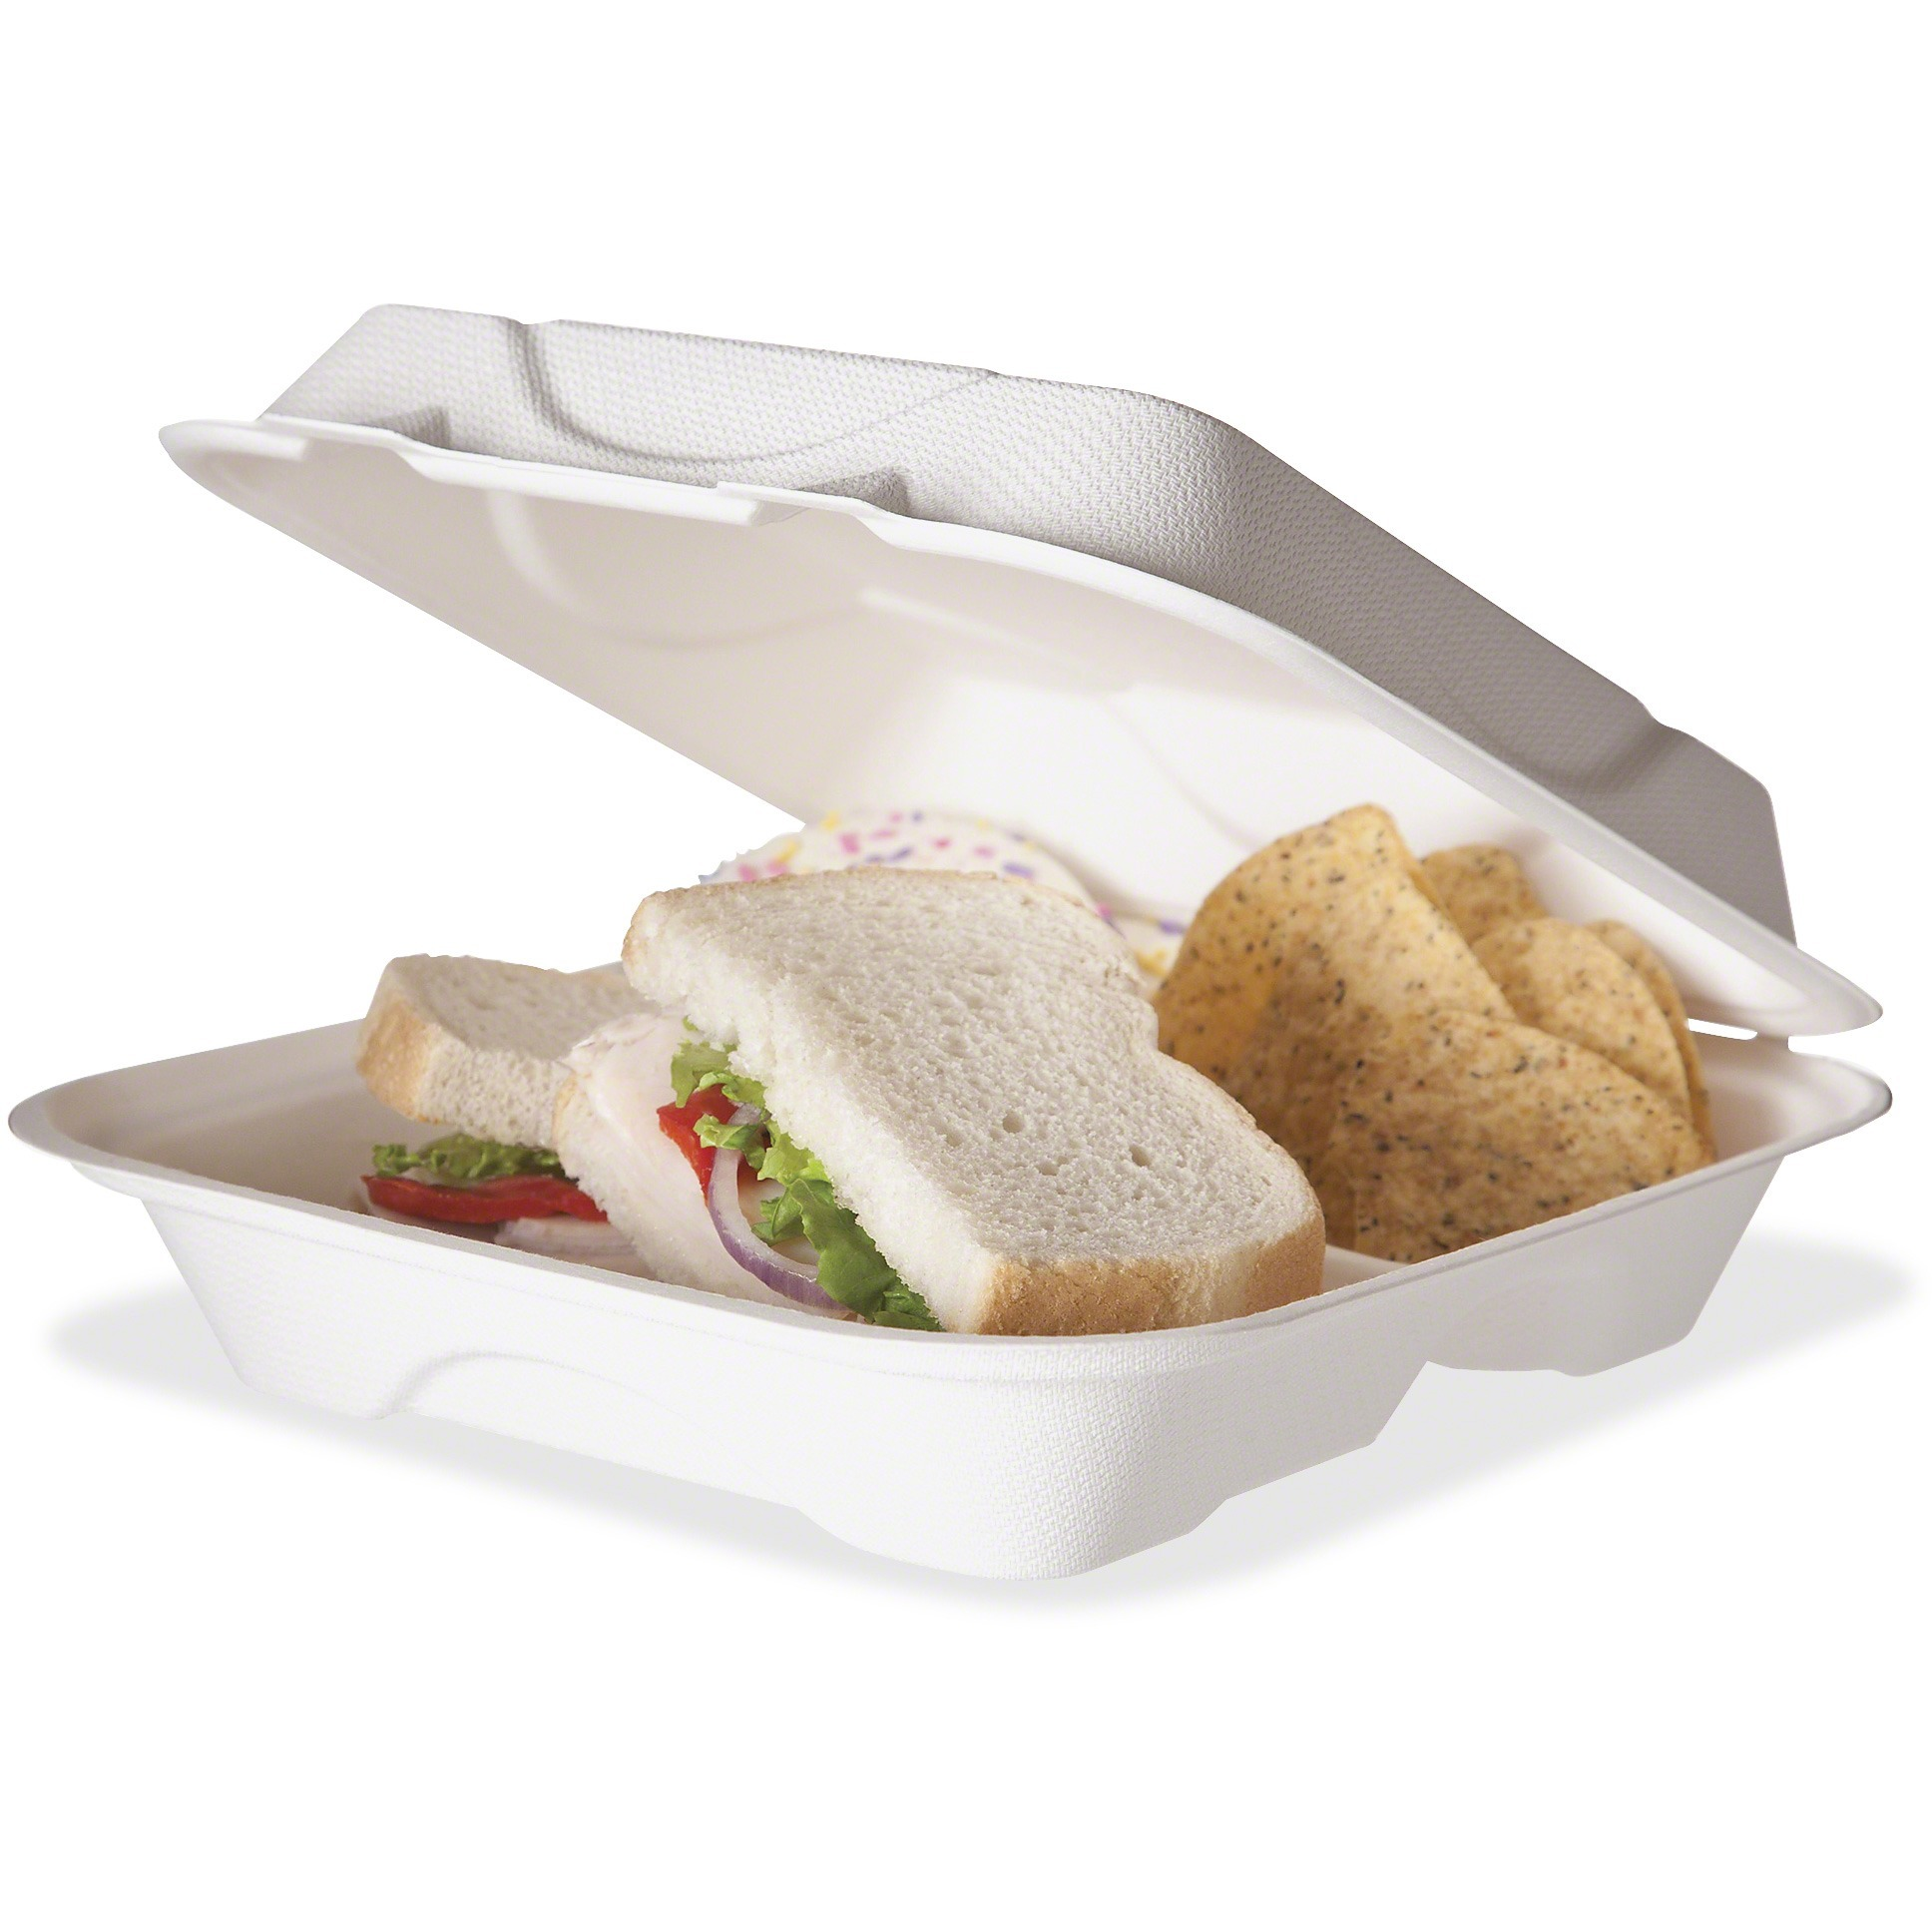 Eco-Products, ECOEPHC93, 3-compartment Clamshell Containers, 200 / Carton, White